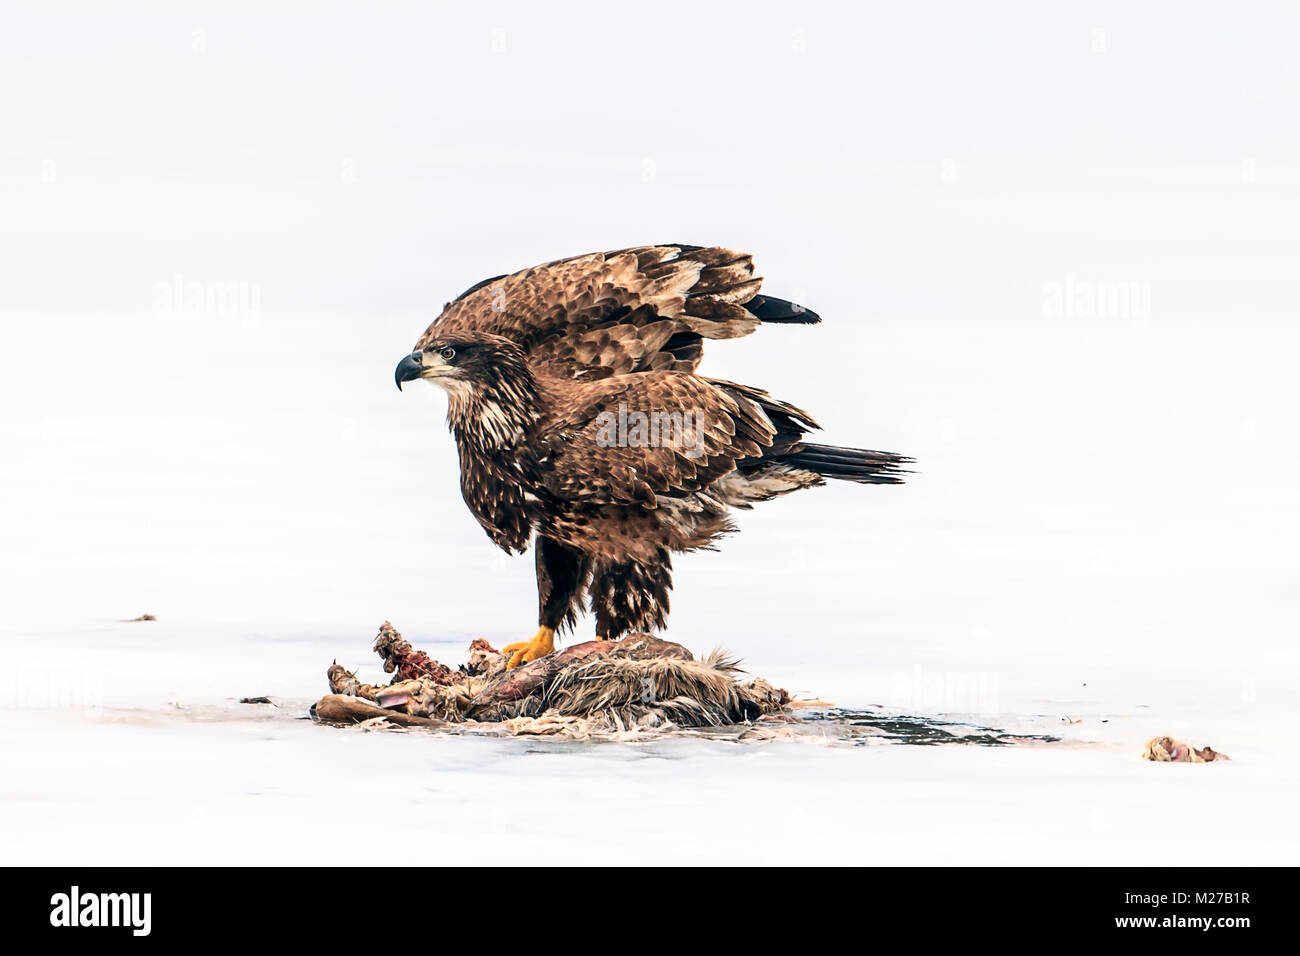 Immature bald eagle flutters wings by dead animal on the frozen Hauser Lake in Idaho. - Stock Image